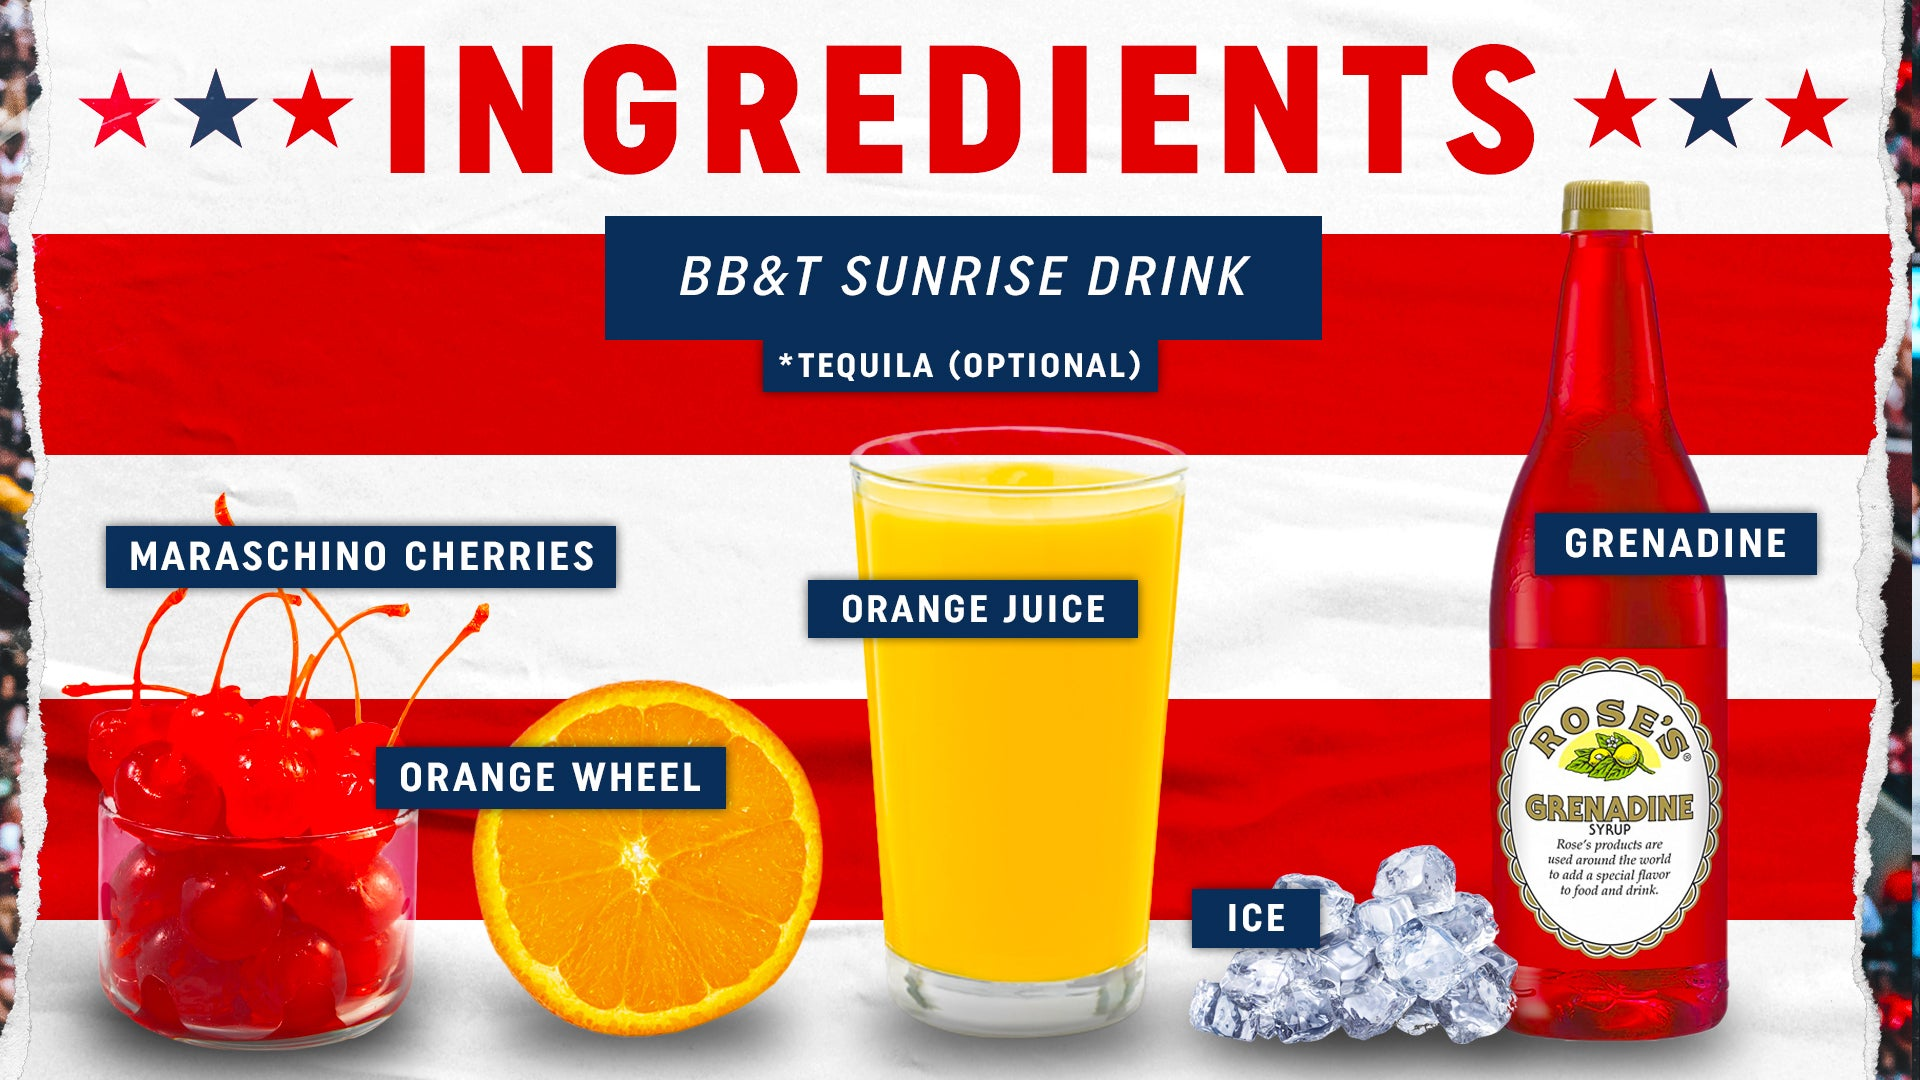 FLA_Panthers_4th_July_Recipe_Sunrise_Ingredients_16x9.jpg